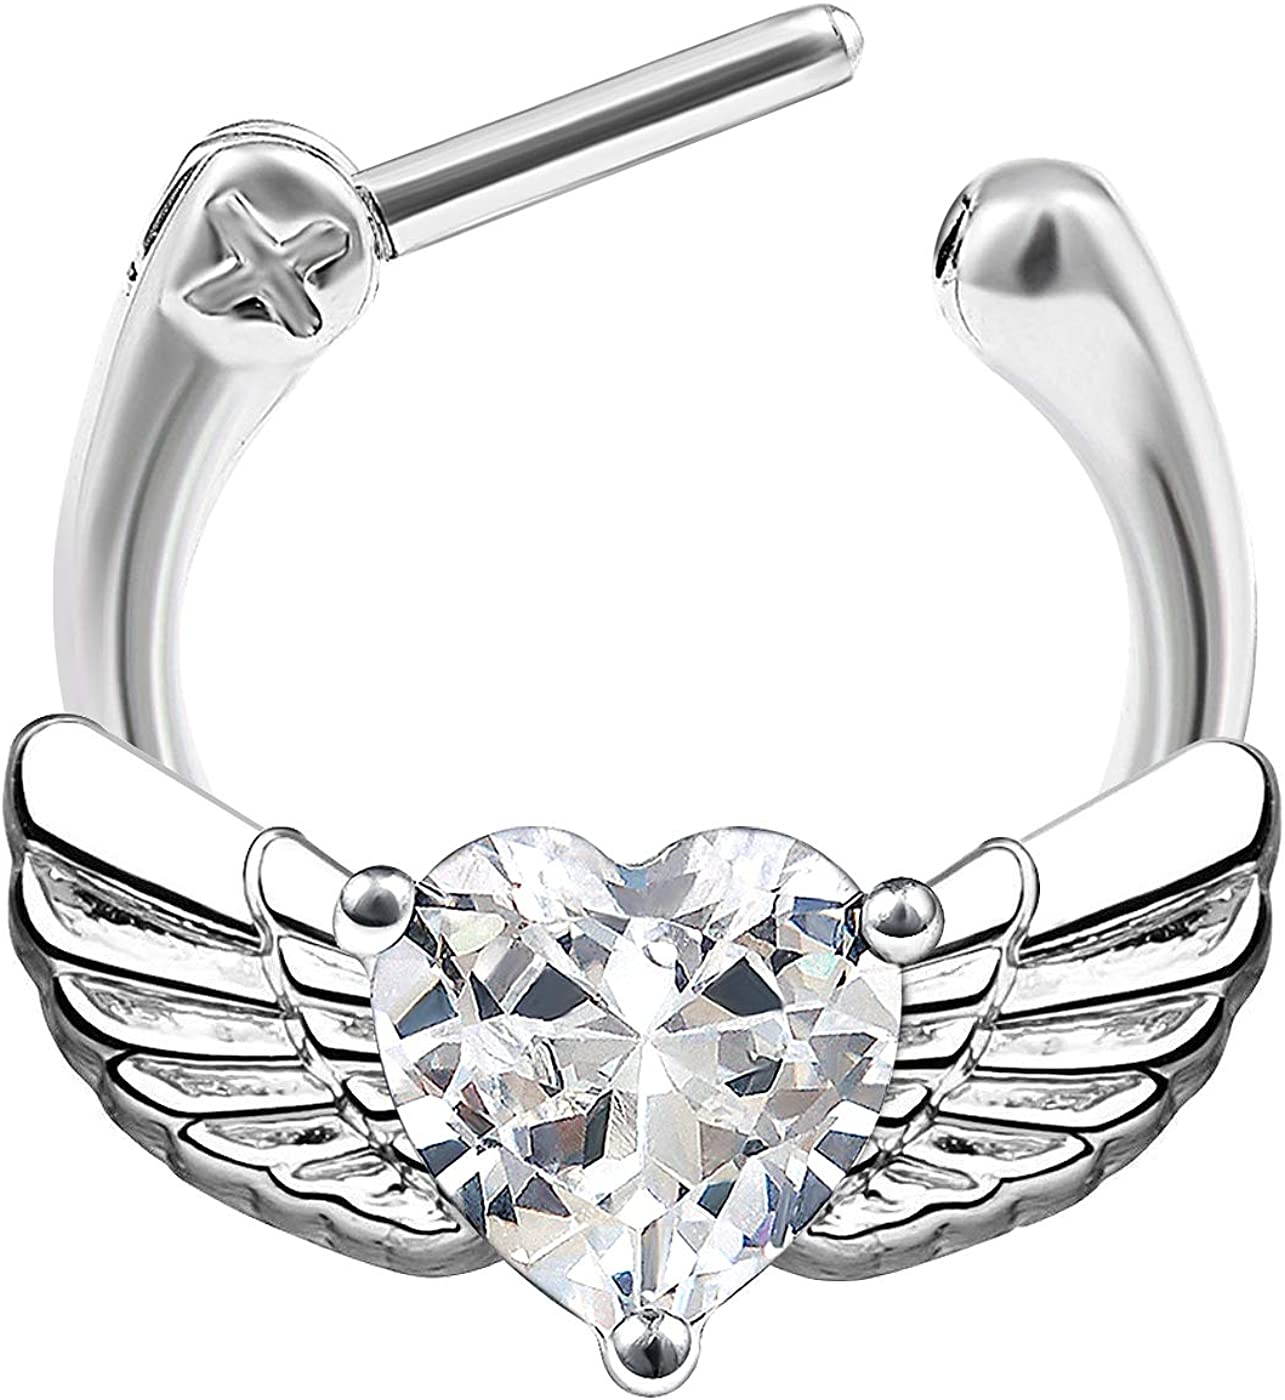 MATIGA Surgical Steel 16 Gauge Septum clicker Piercing Jewelry Earring Eyebrow Cartilage Nose Tragus Labret Lip Crystal More Choices